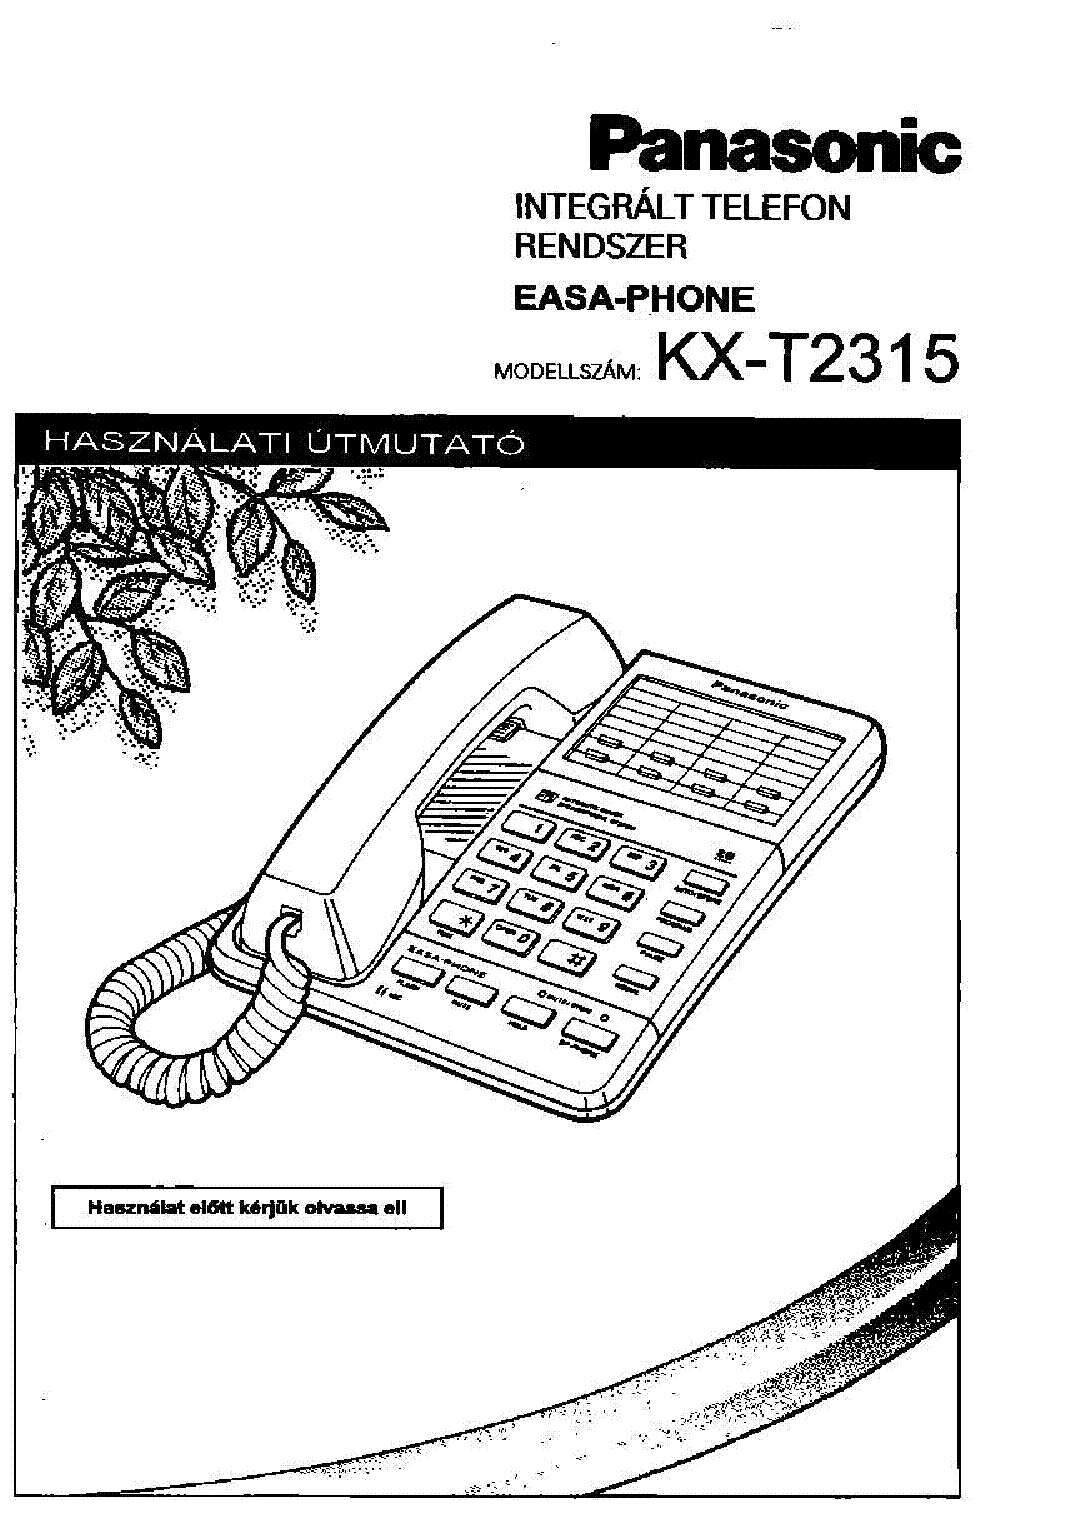 PANASONIC KX-T2315 HASZNALATI HUN Service Manual download